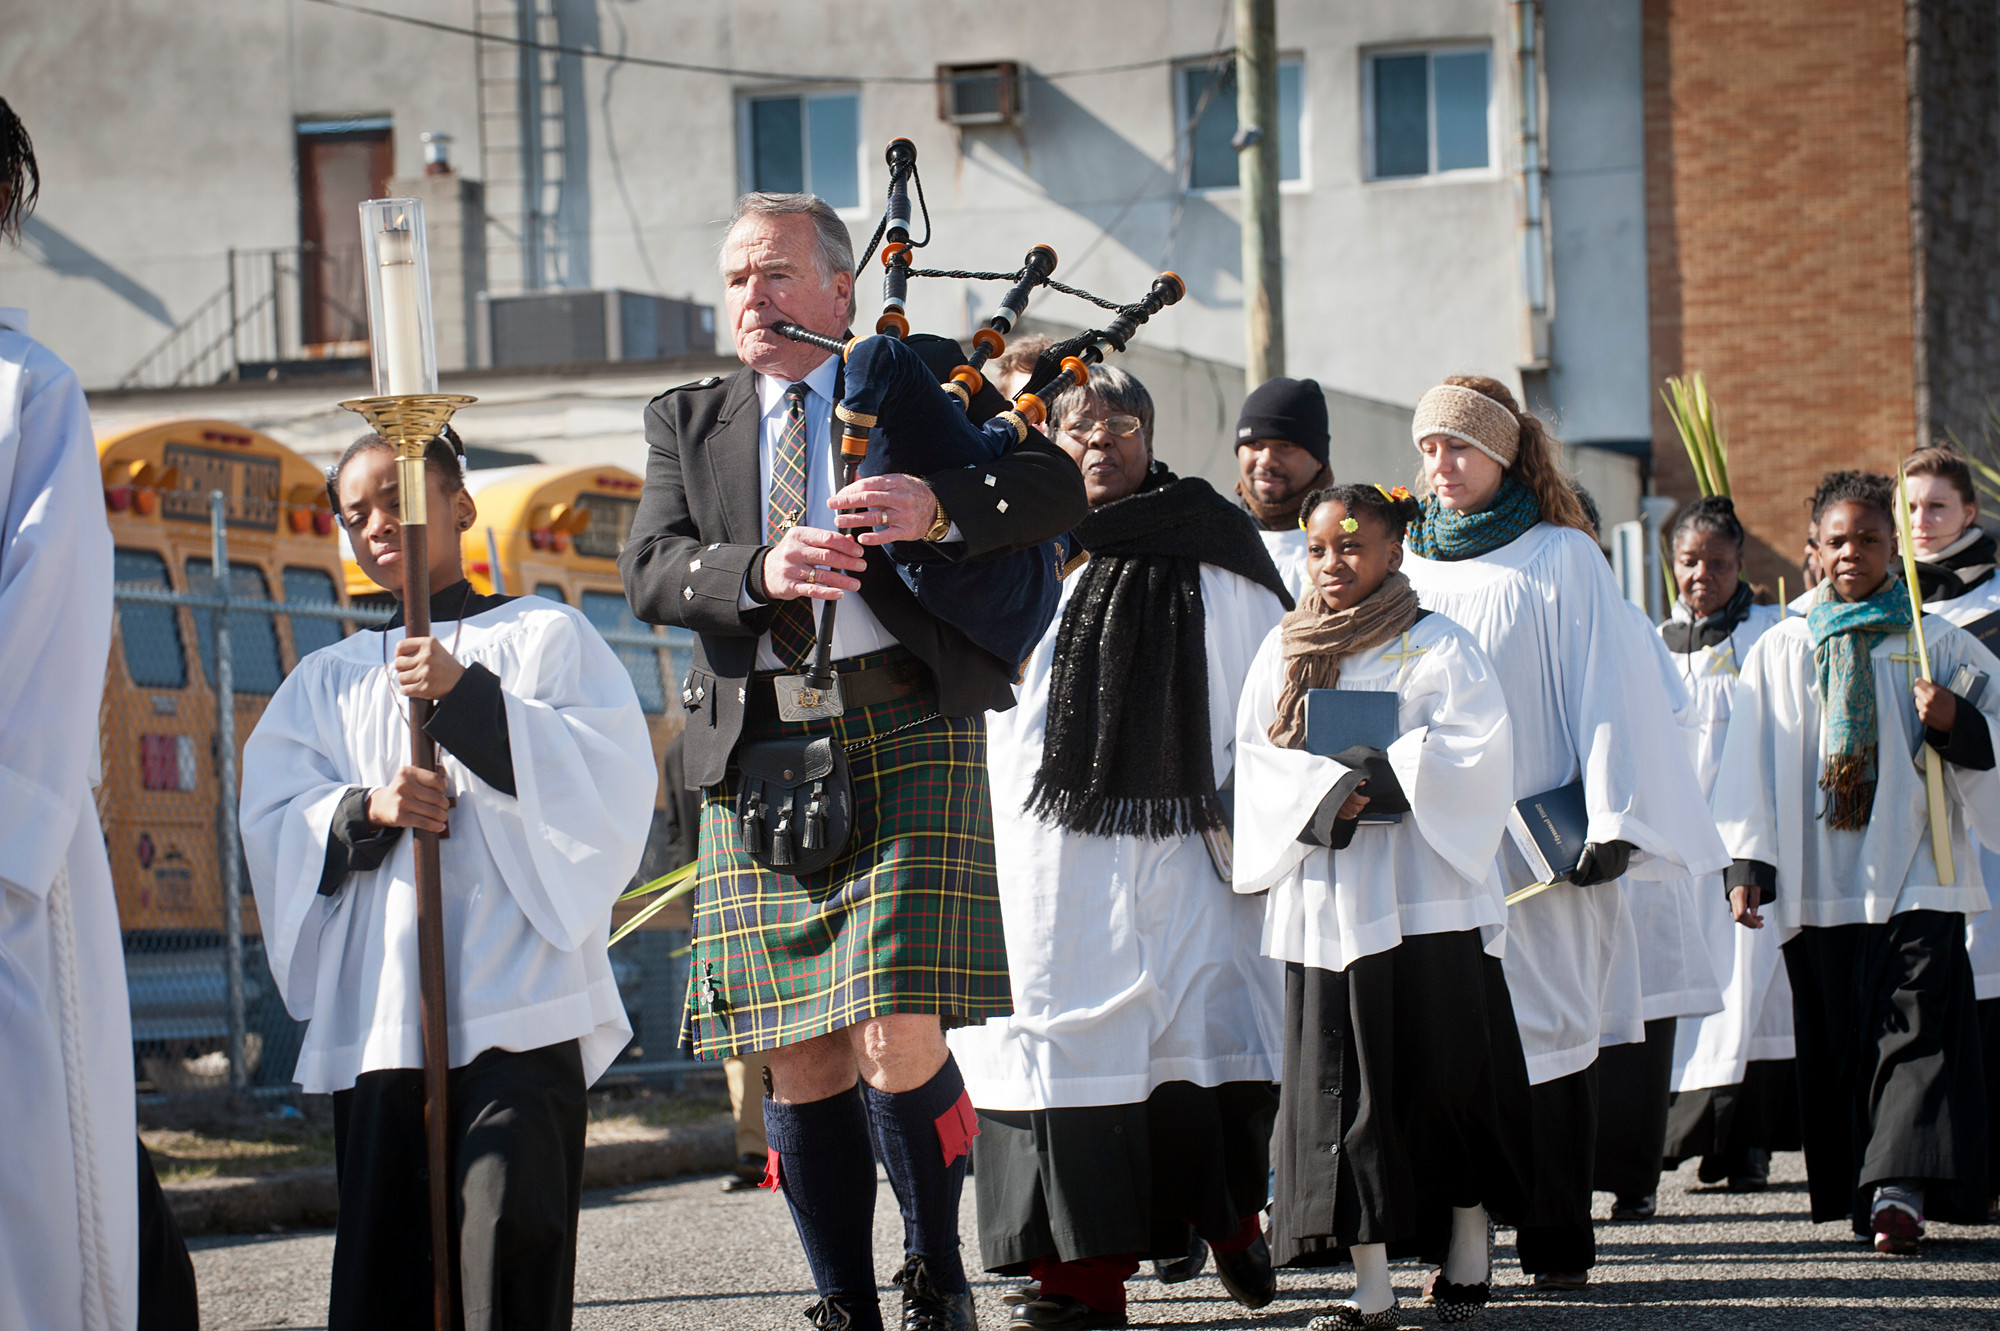 Bagpiper Jim Noone,of the Wantagh Bag Pipe Band, played the Highland Bagpipe during the Palm Sunday procession.